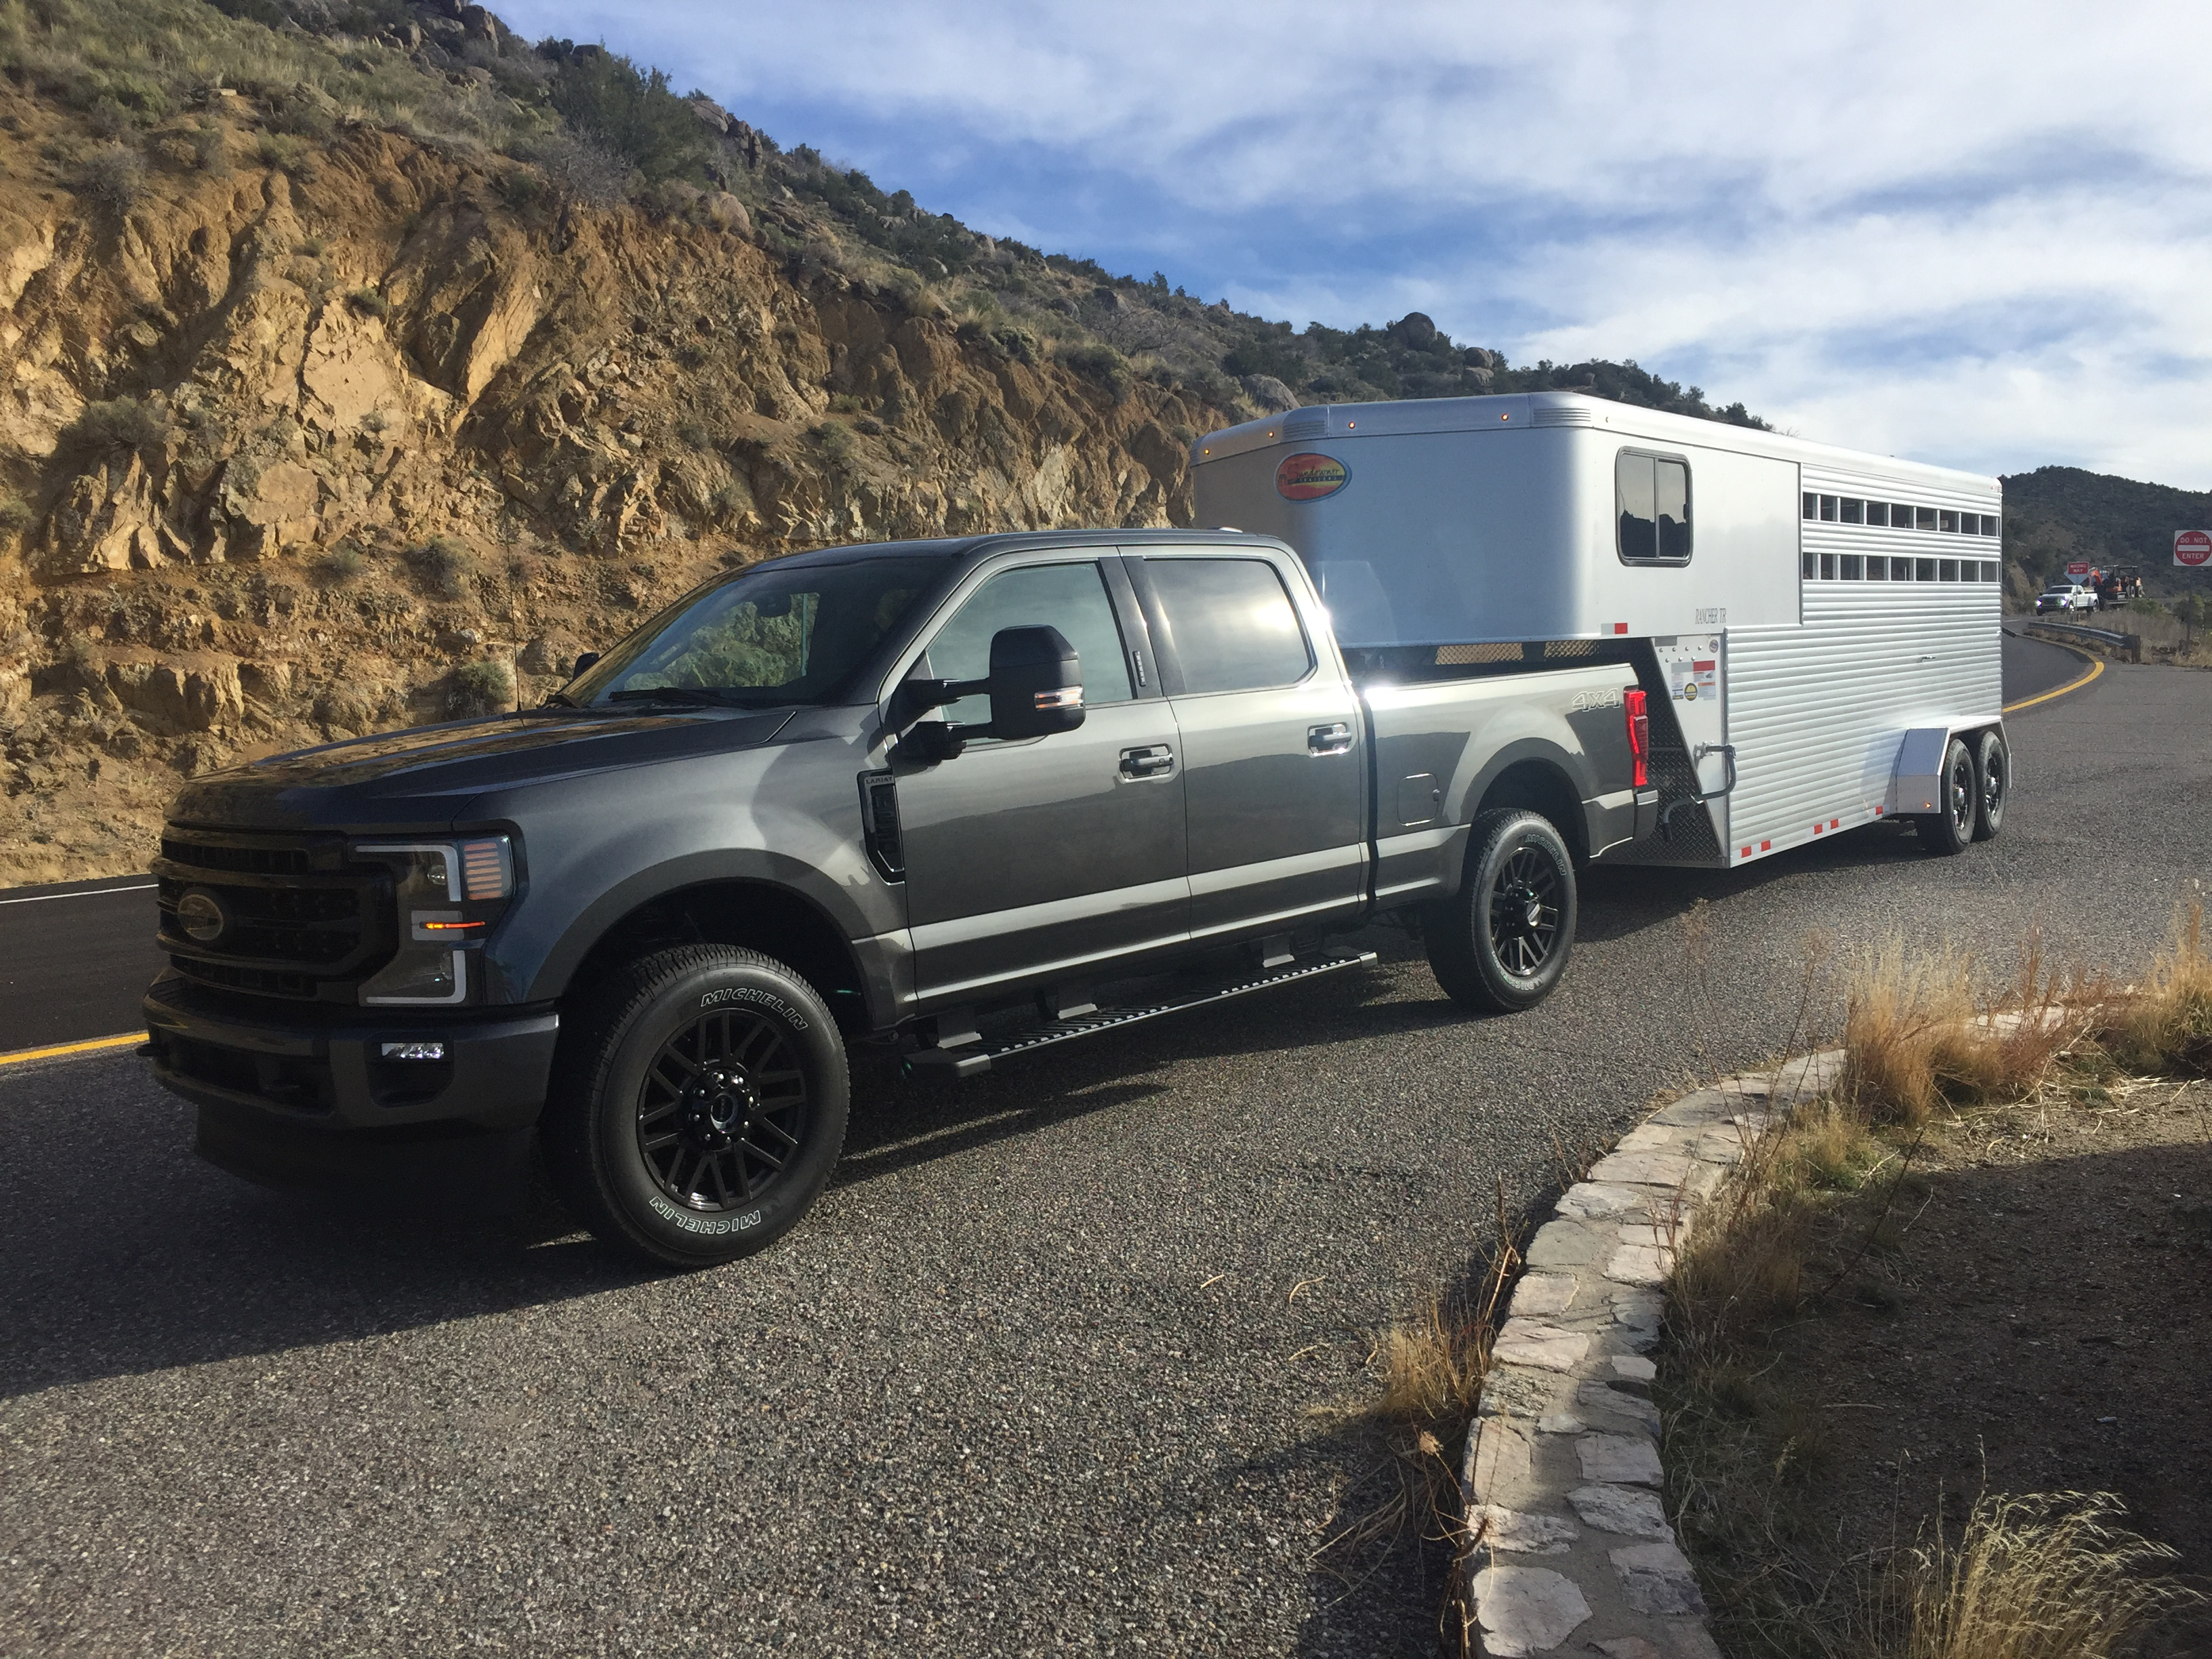 2020 Ford F-250 Lariat hauling a livestock trailer